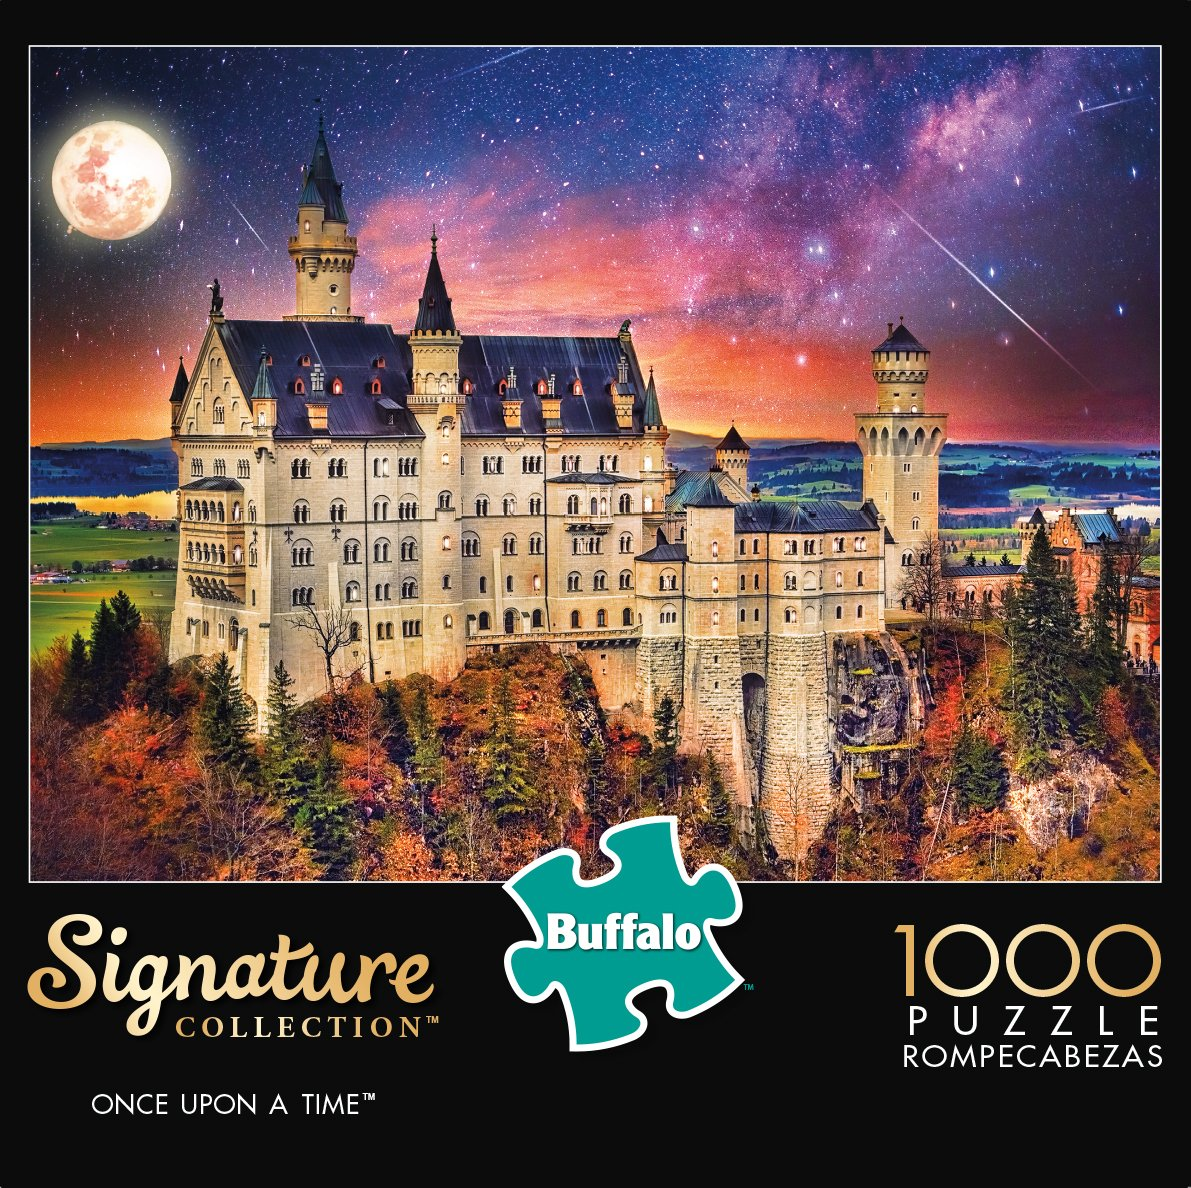 Buffalo Games - Signature Collection - Once Upon a Time - 1000 Piece Jigsaw Puzzle by Buffalo Games (Image #2)